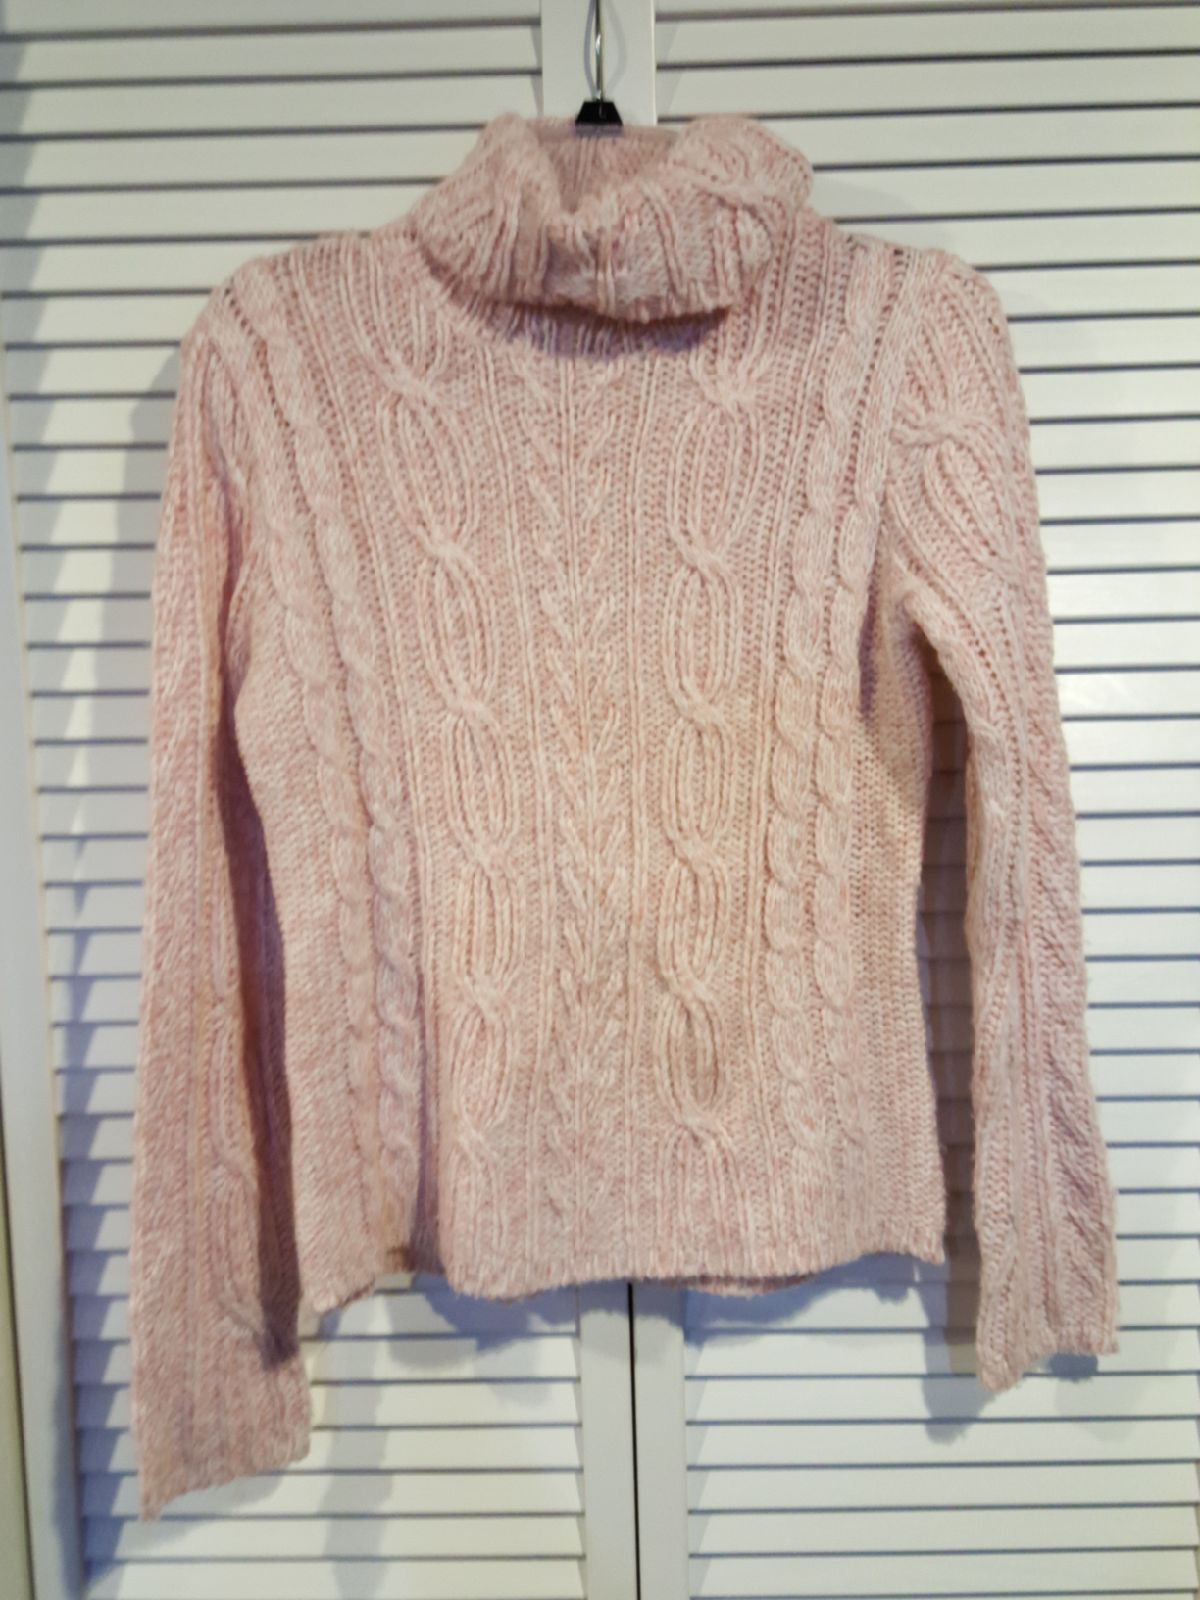 St John's Bay Turtleneck Sweater, size M - Mercari: BUY & SELL ...